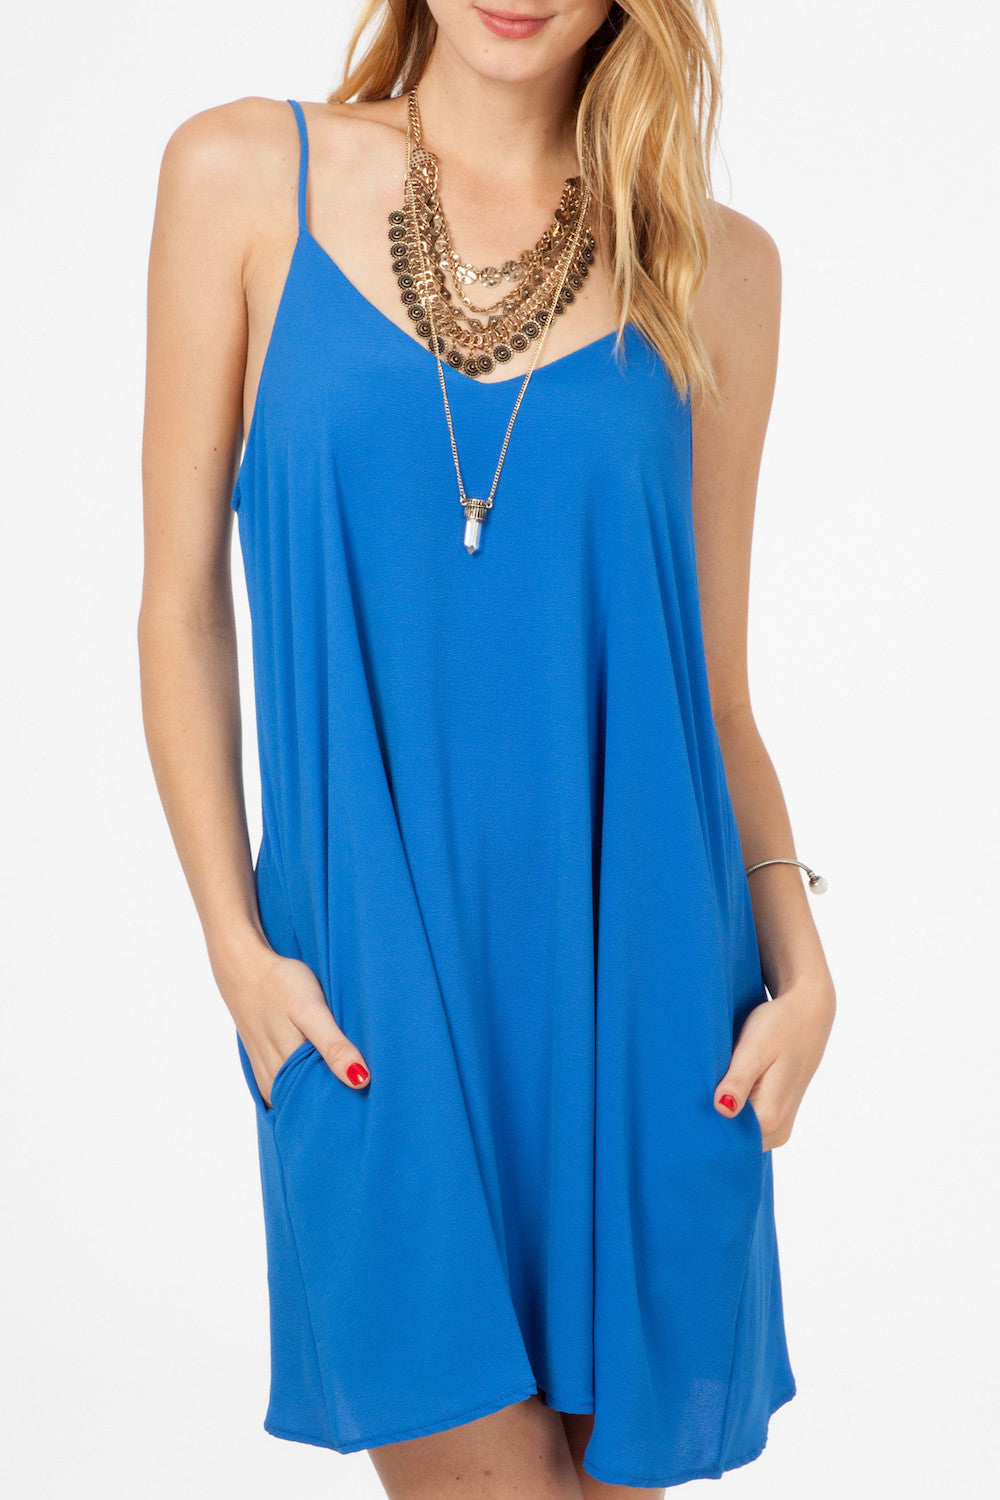 73c01ef3e782 Royal Blue Solid Swing Dress - South of Society